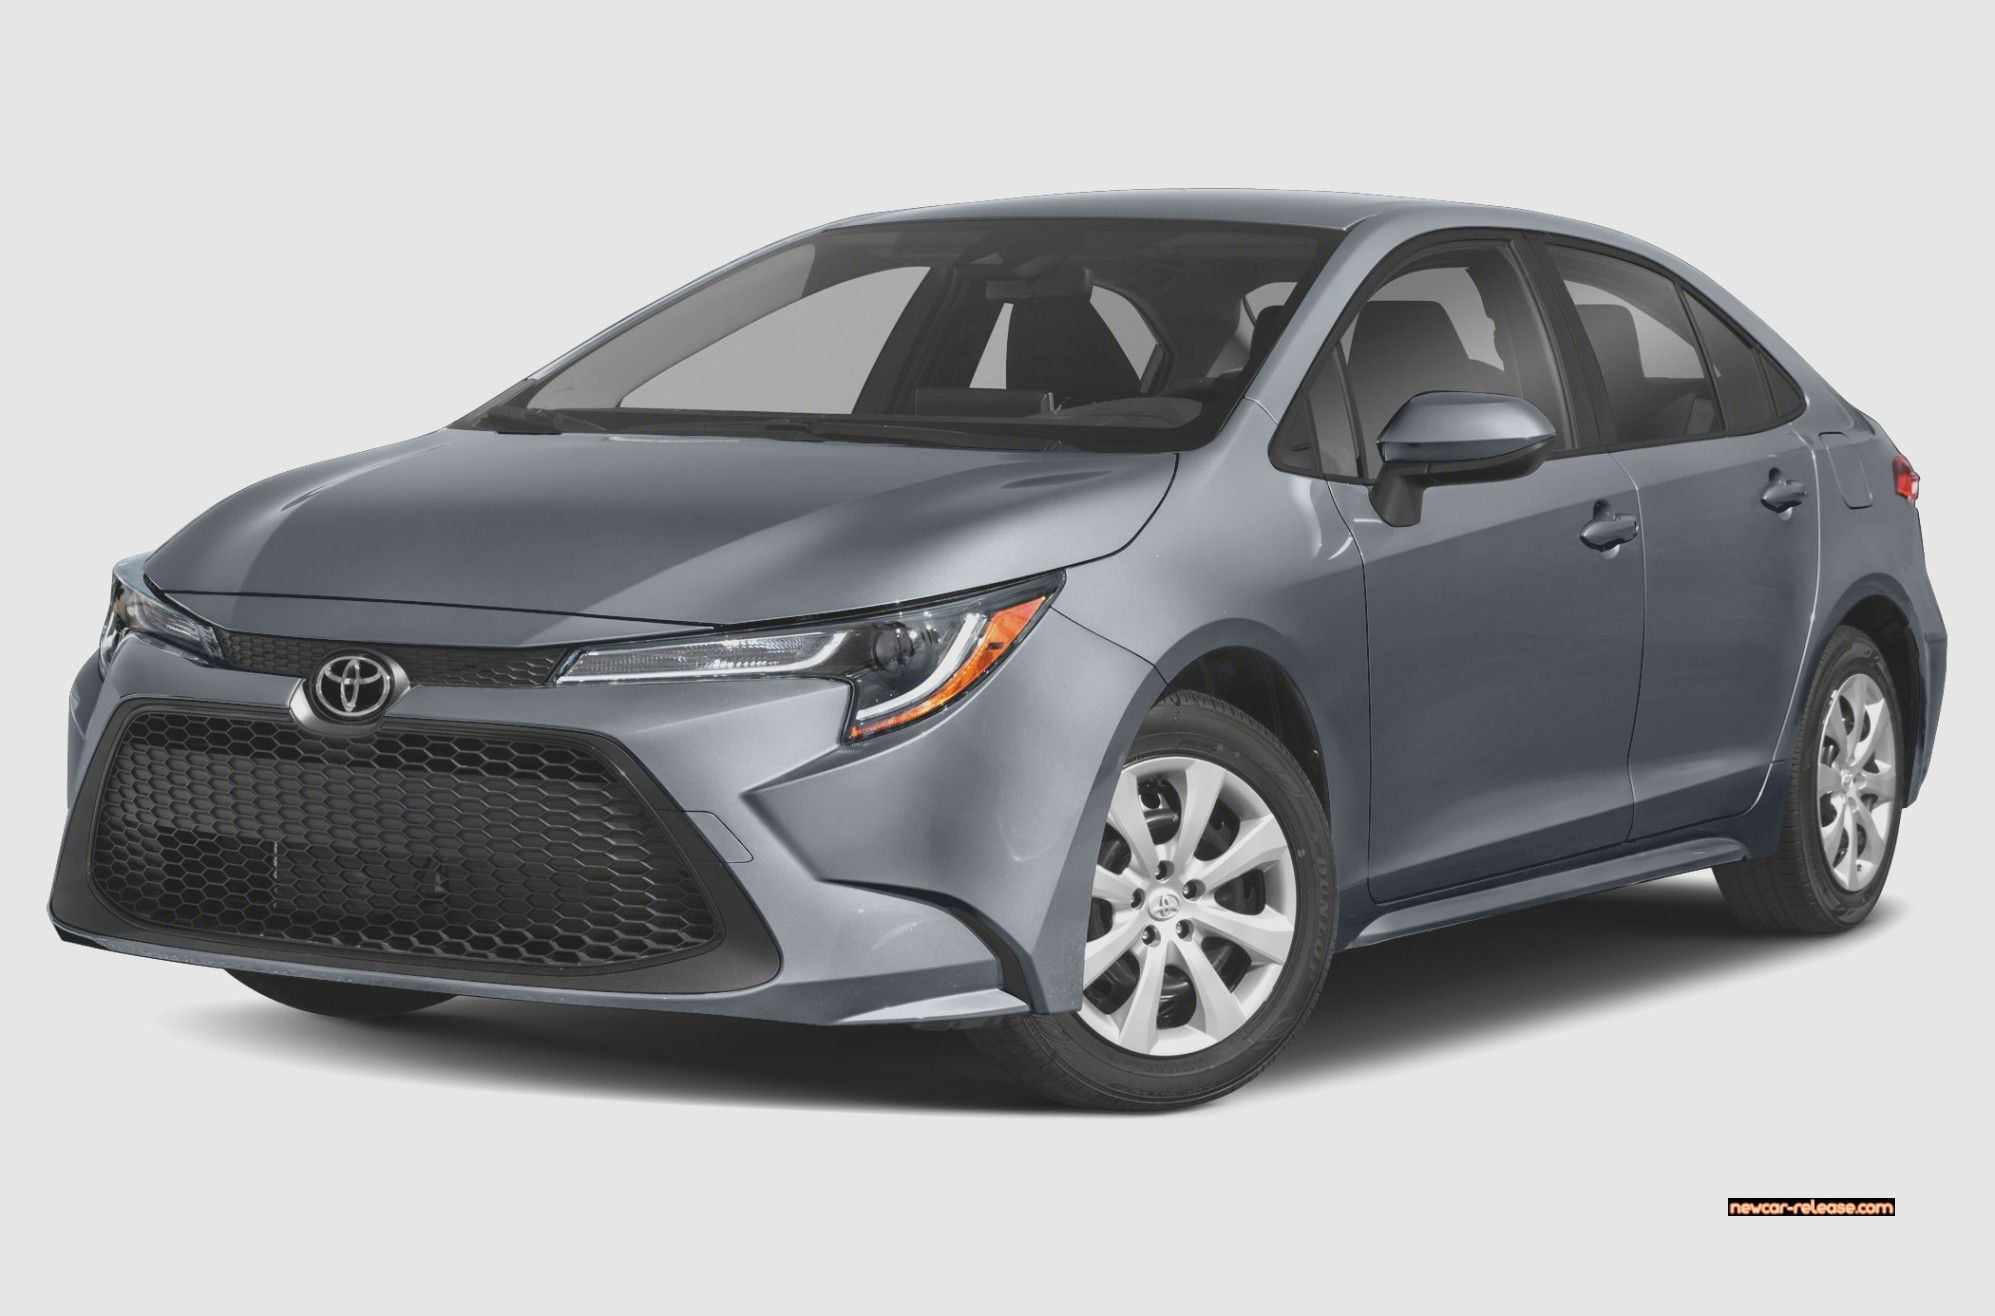 16 Toyota Corolla Le 16dr Sedan Owner Reviews And Ratings 2021 Toyota Corolla S In 2021 Toyota Corolla Toyota Corolla Le Corolla Le